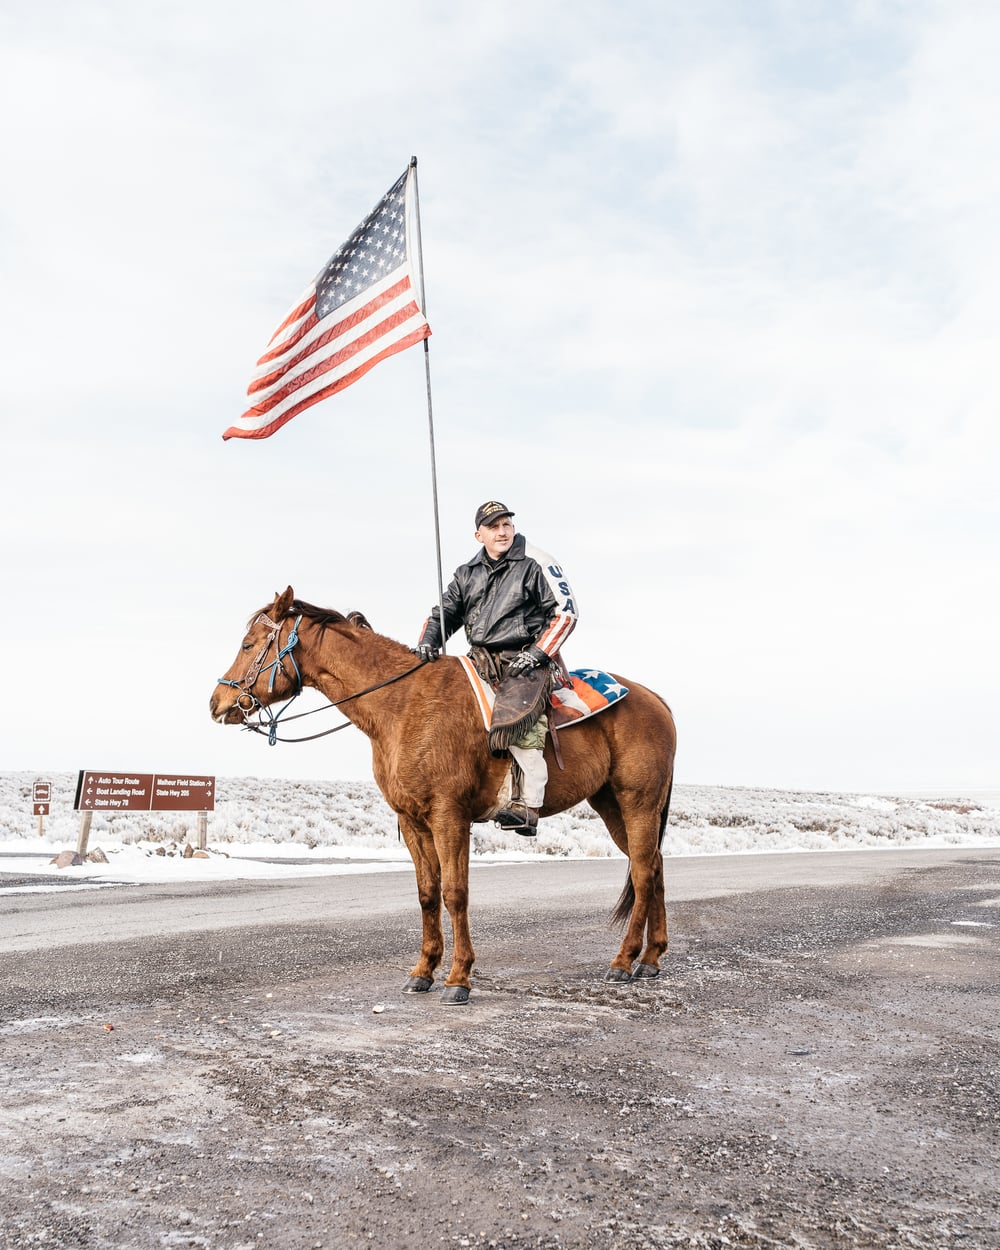 burns_oregon_standoff_508.jpg